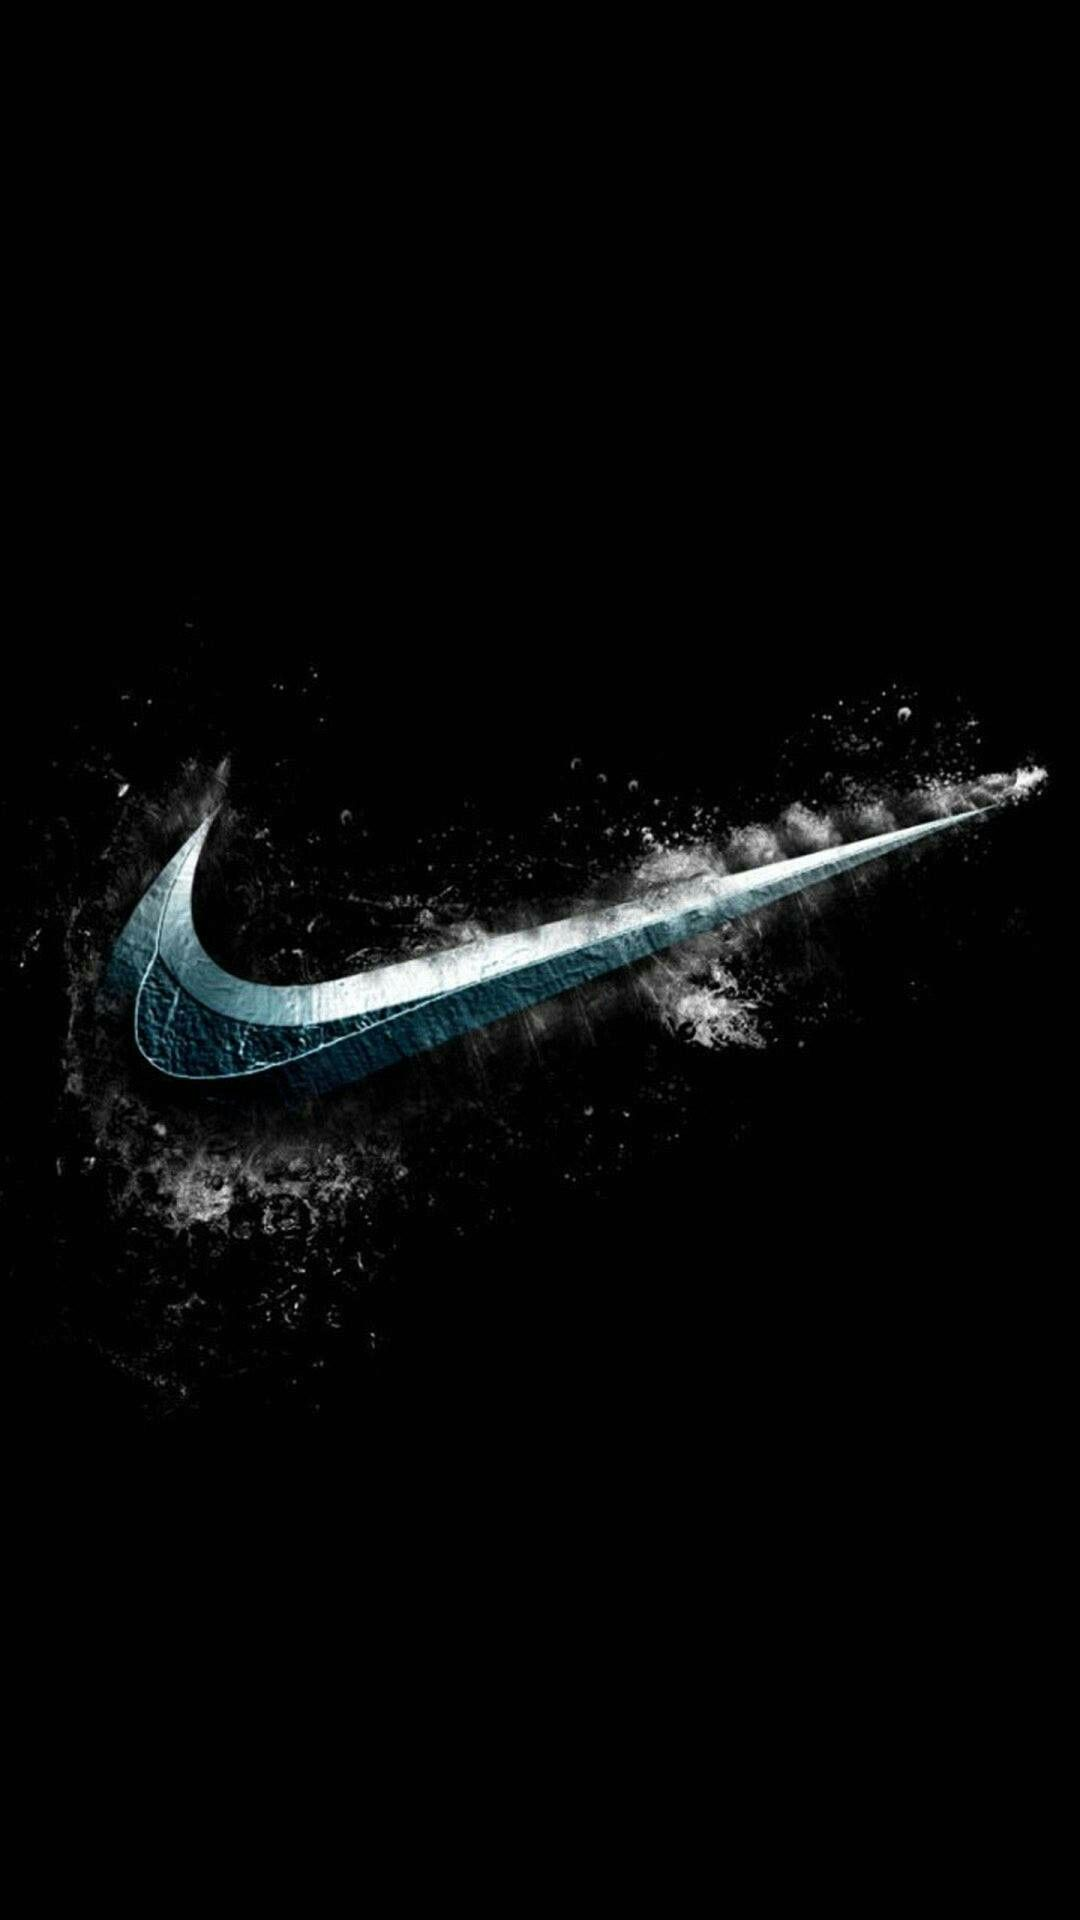 Cool Nike Logos, Live Wallpapers, Just Do It Wallpapers, Iphone Wallpapers, Iphone